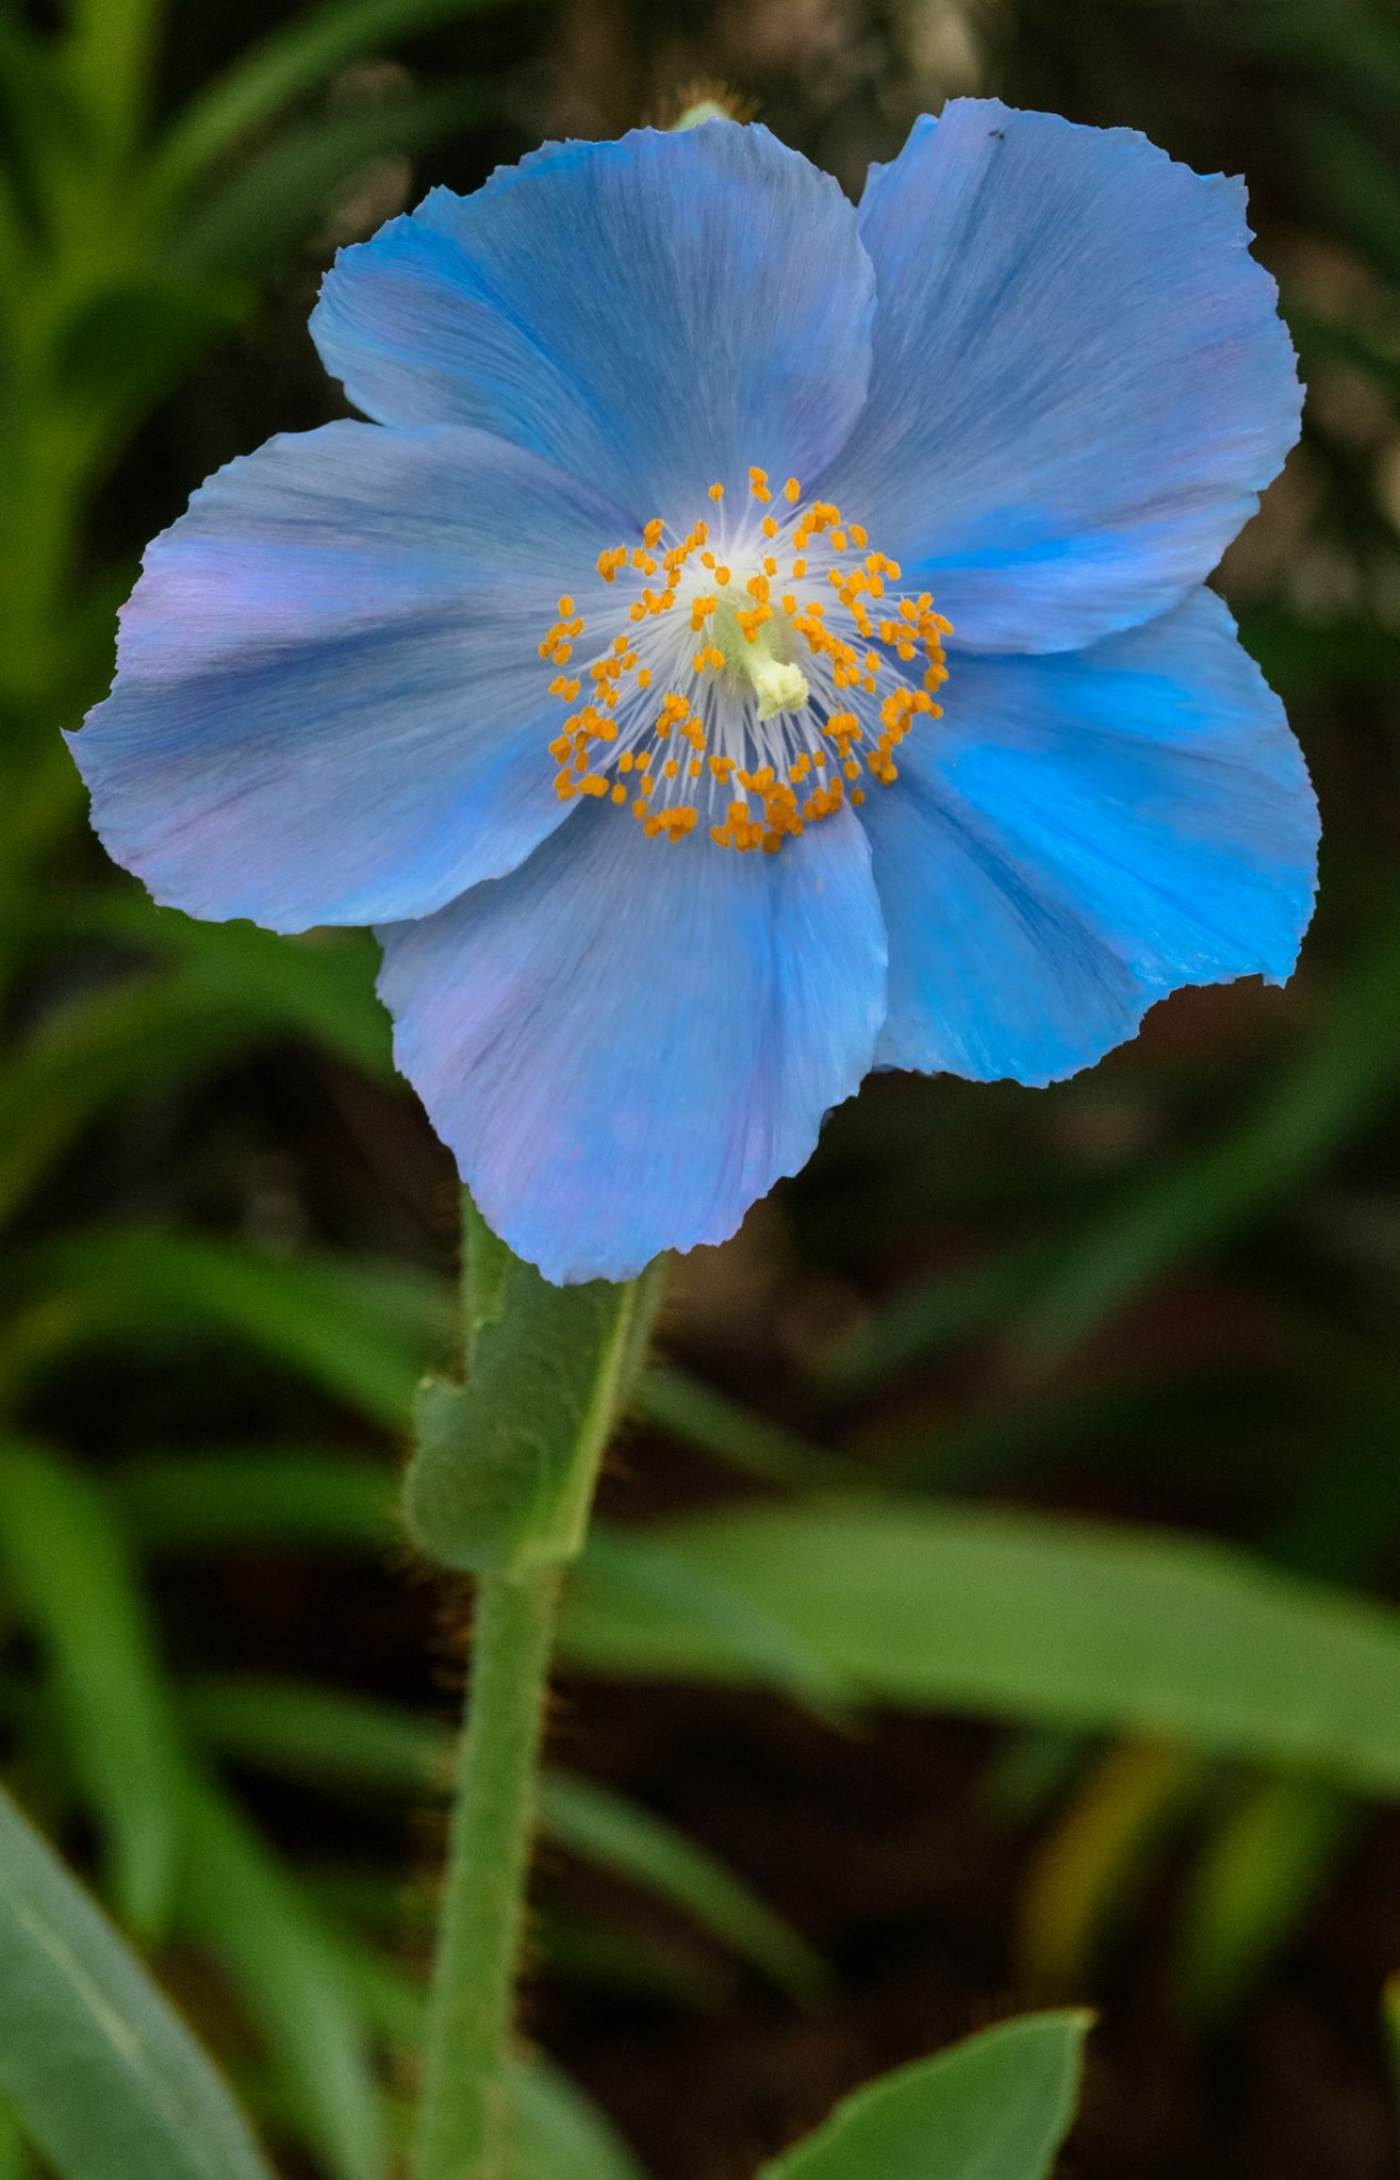 A Himalayan blue poppy is viewed in closeup in Phipps' Spring Flower Show.